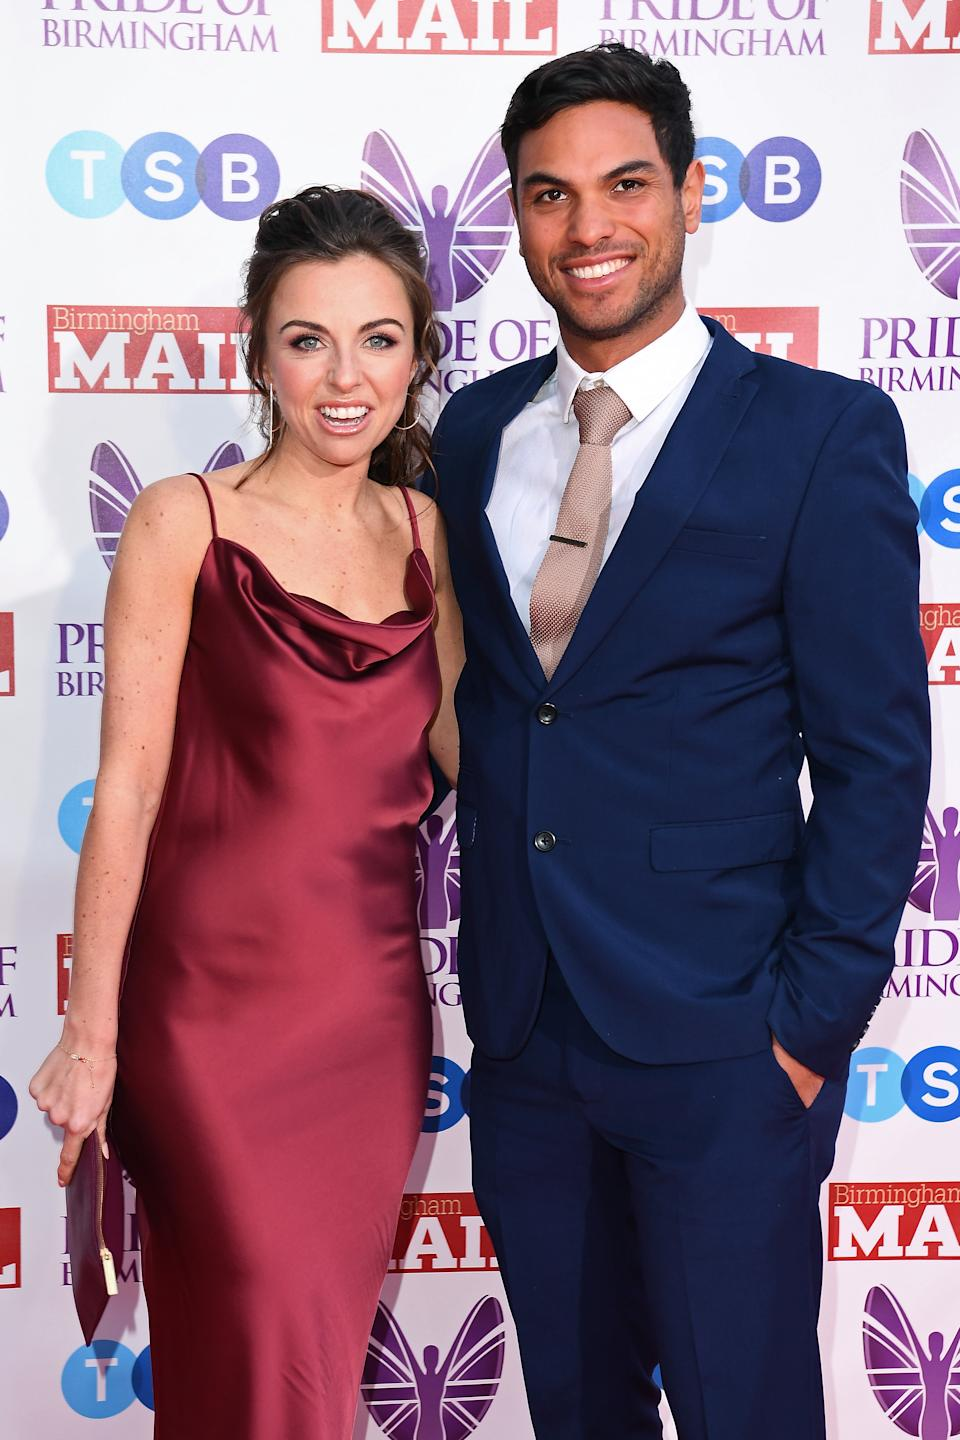 BIRMINGHAM, ENGLAND - MARCH 26: Louisa Lytton attends The Pride of Birmingham Awards, in partnership with TSB at University of Birmingham on March 26, 2019 in Birmingham, United Kingdom. (Photo by Jeff Spicer/Getty Images)